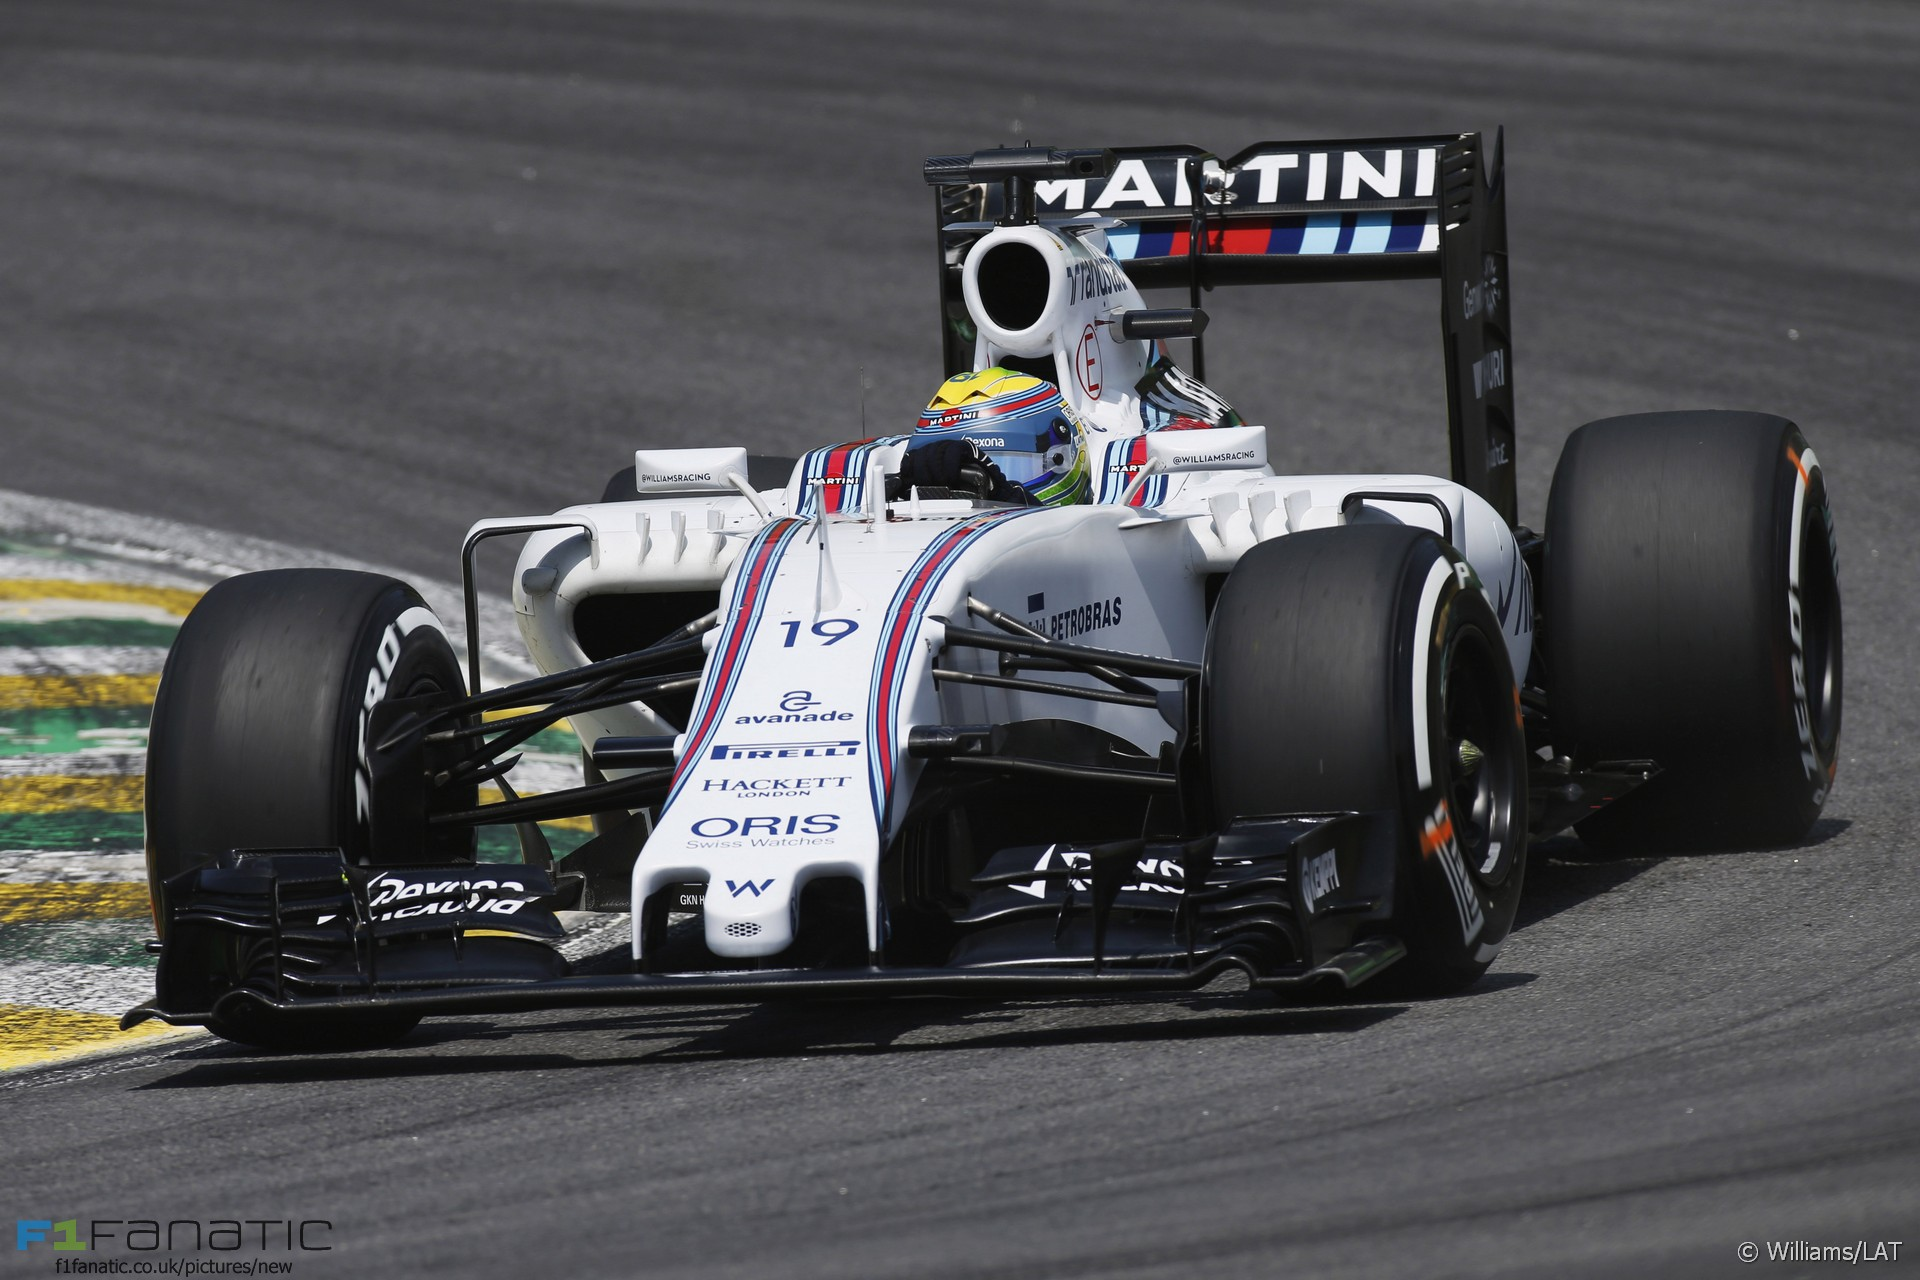 Felipe Massa, Williams, Interlagos, 2015